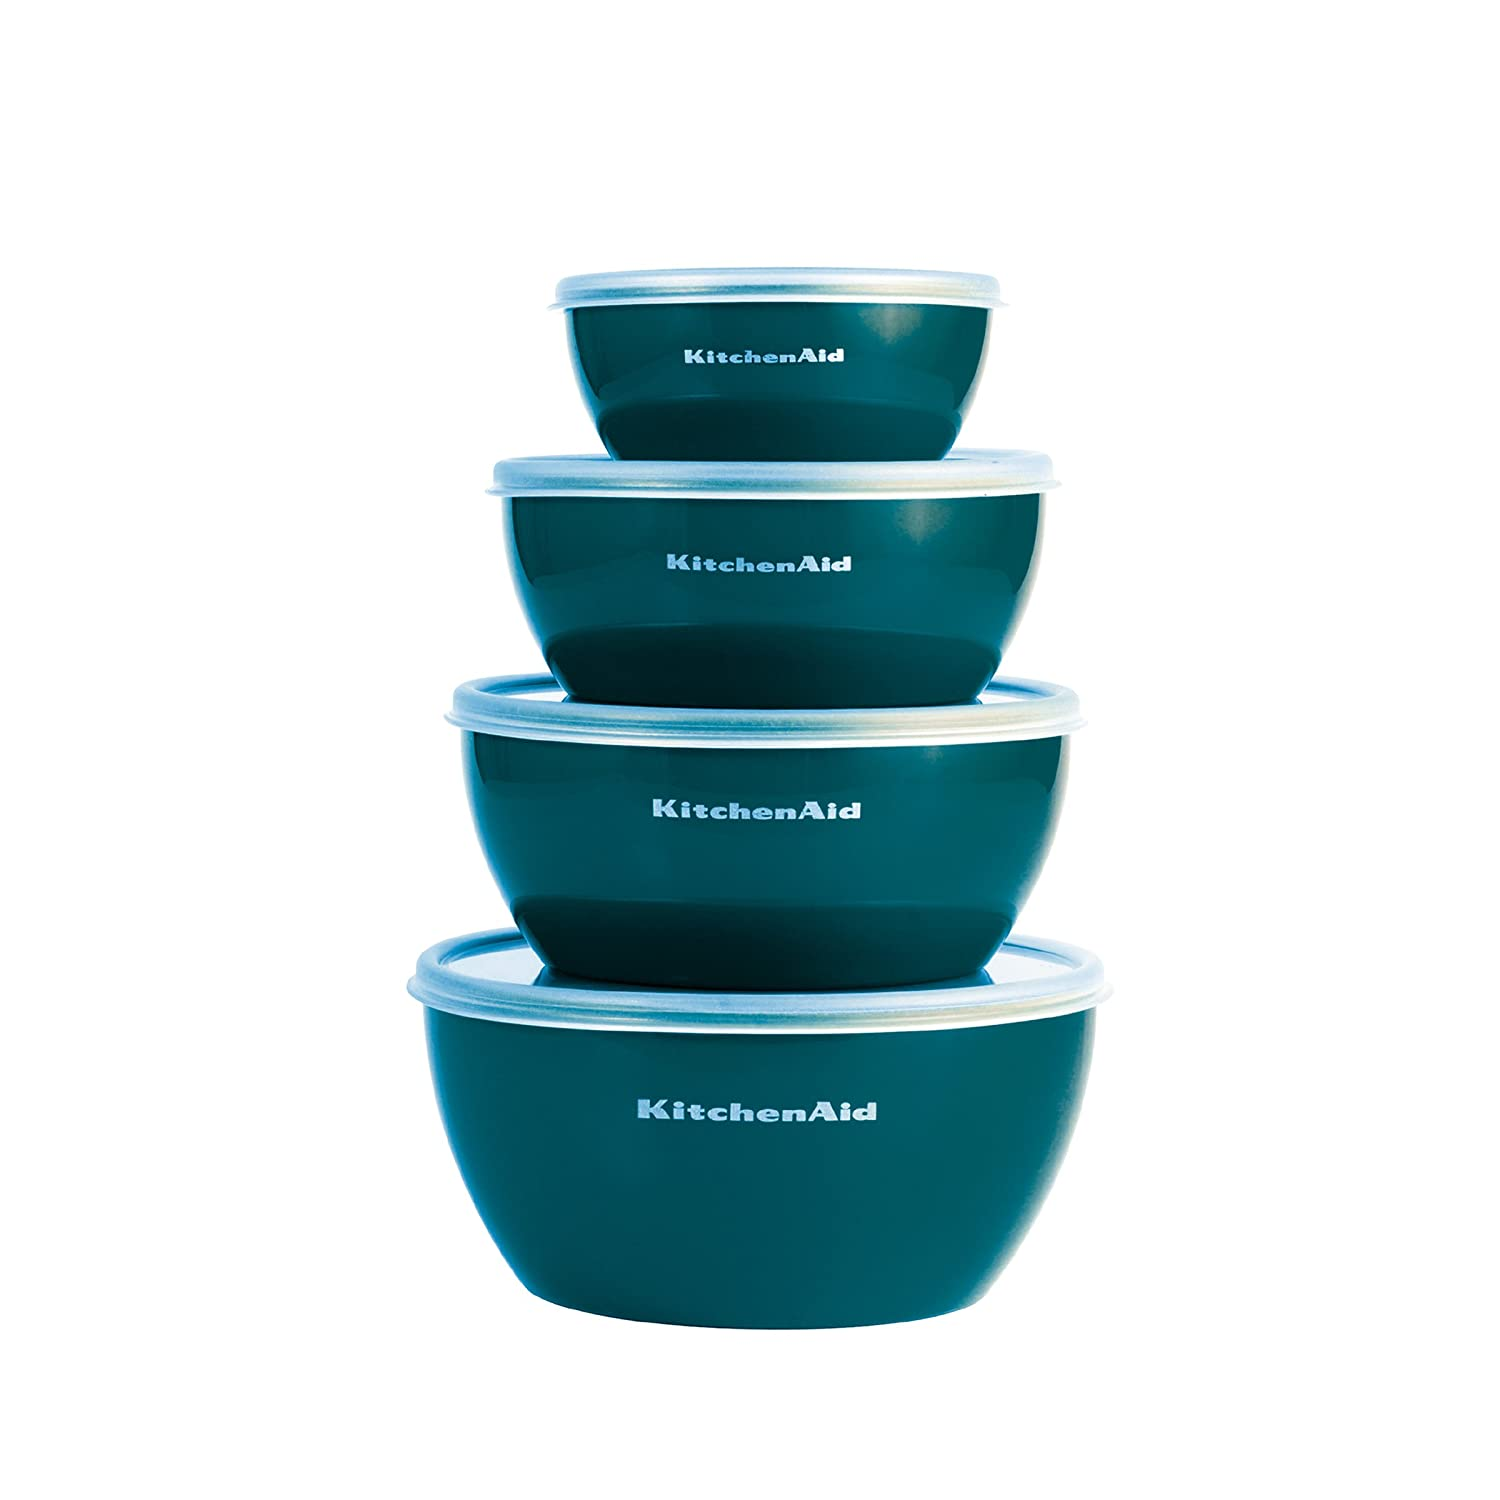 KitchenAid Prep Bowls with Lids, Set of 4, Deep Teal